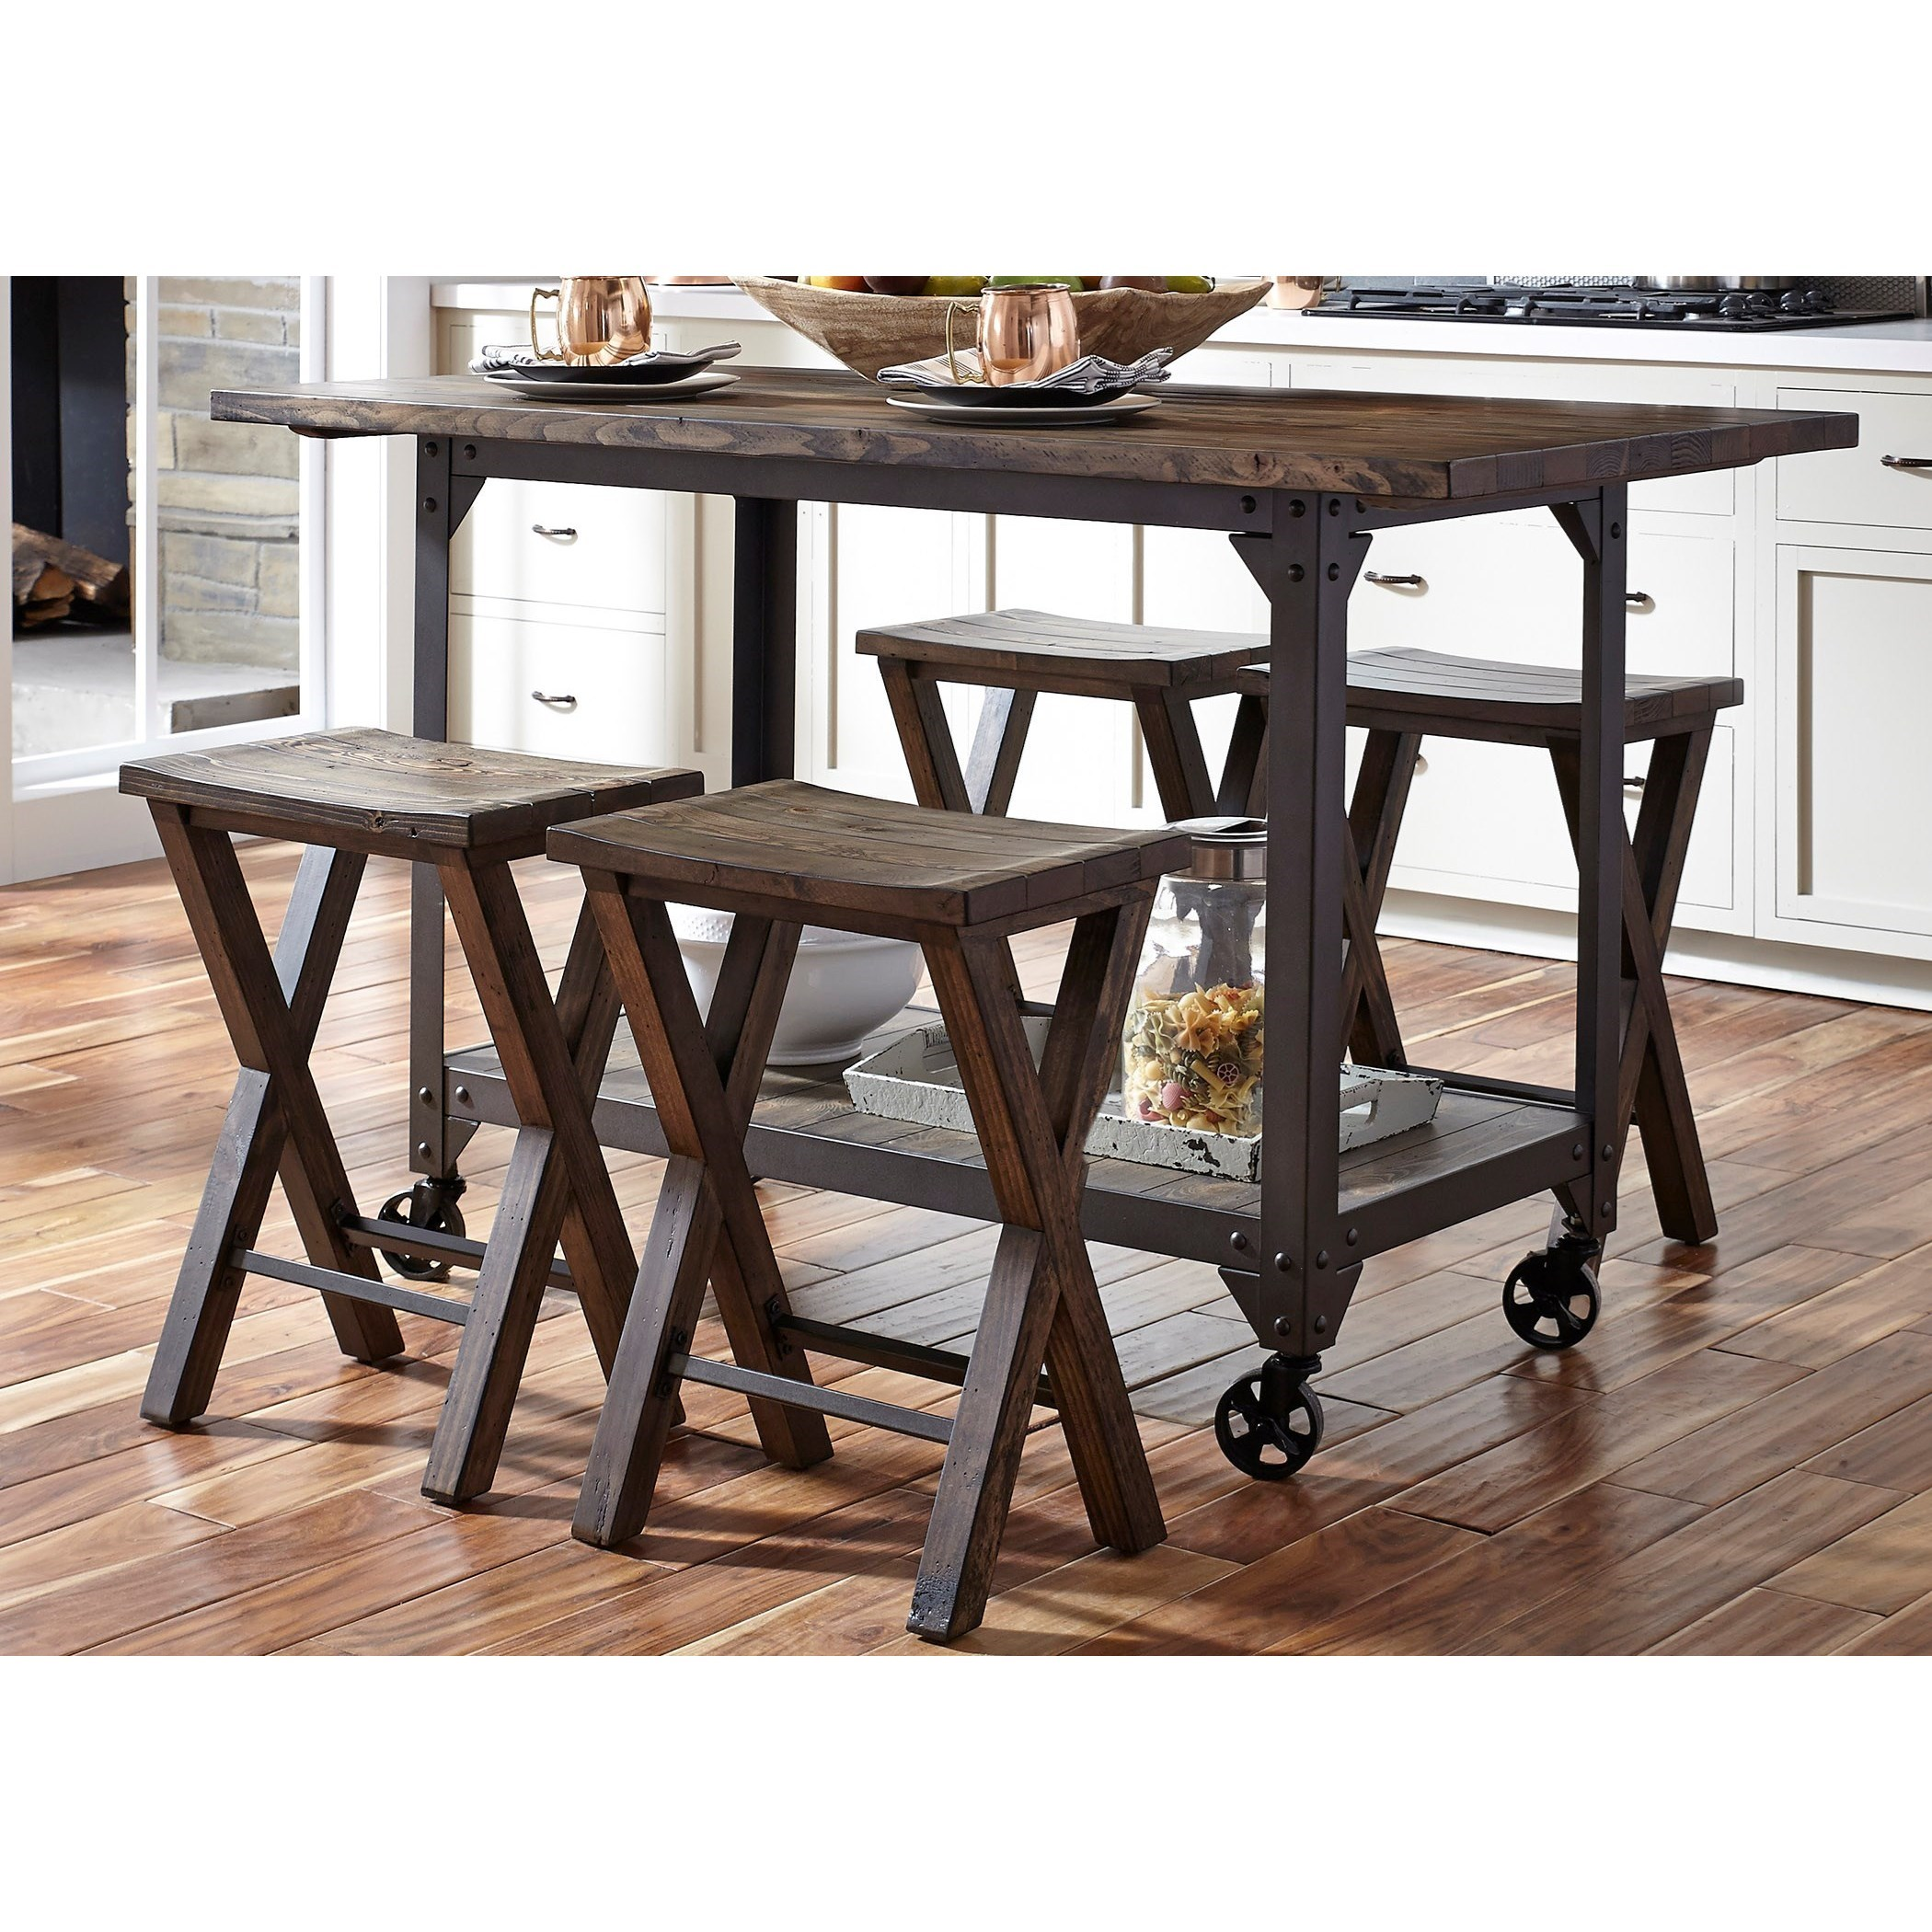 Industrial kitchen island and counter height stool set by for Kitchen set industrial